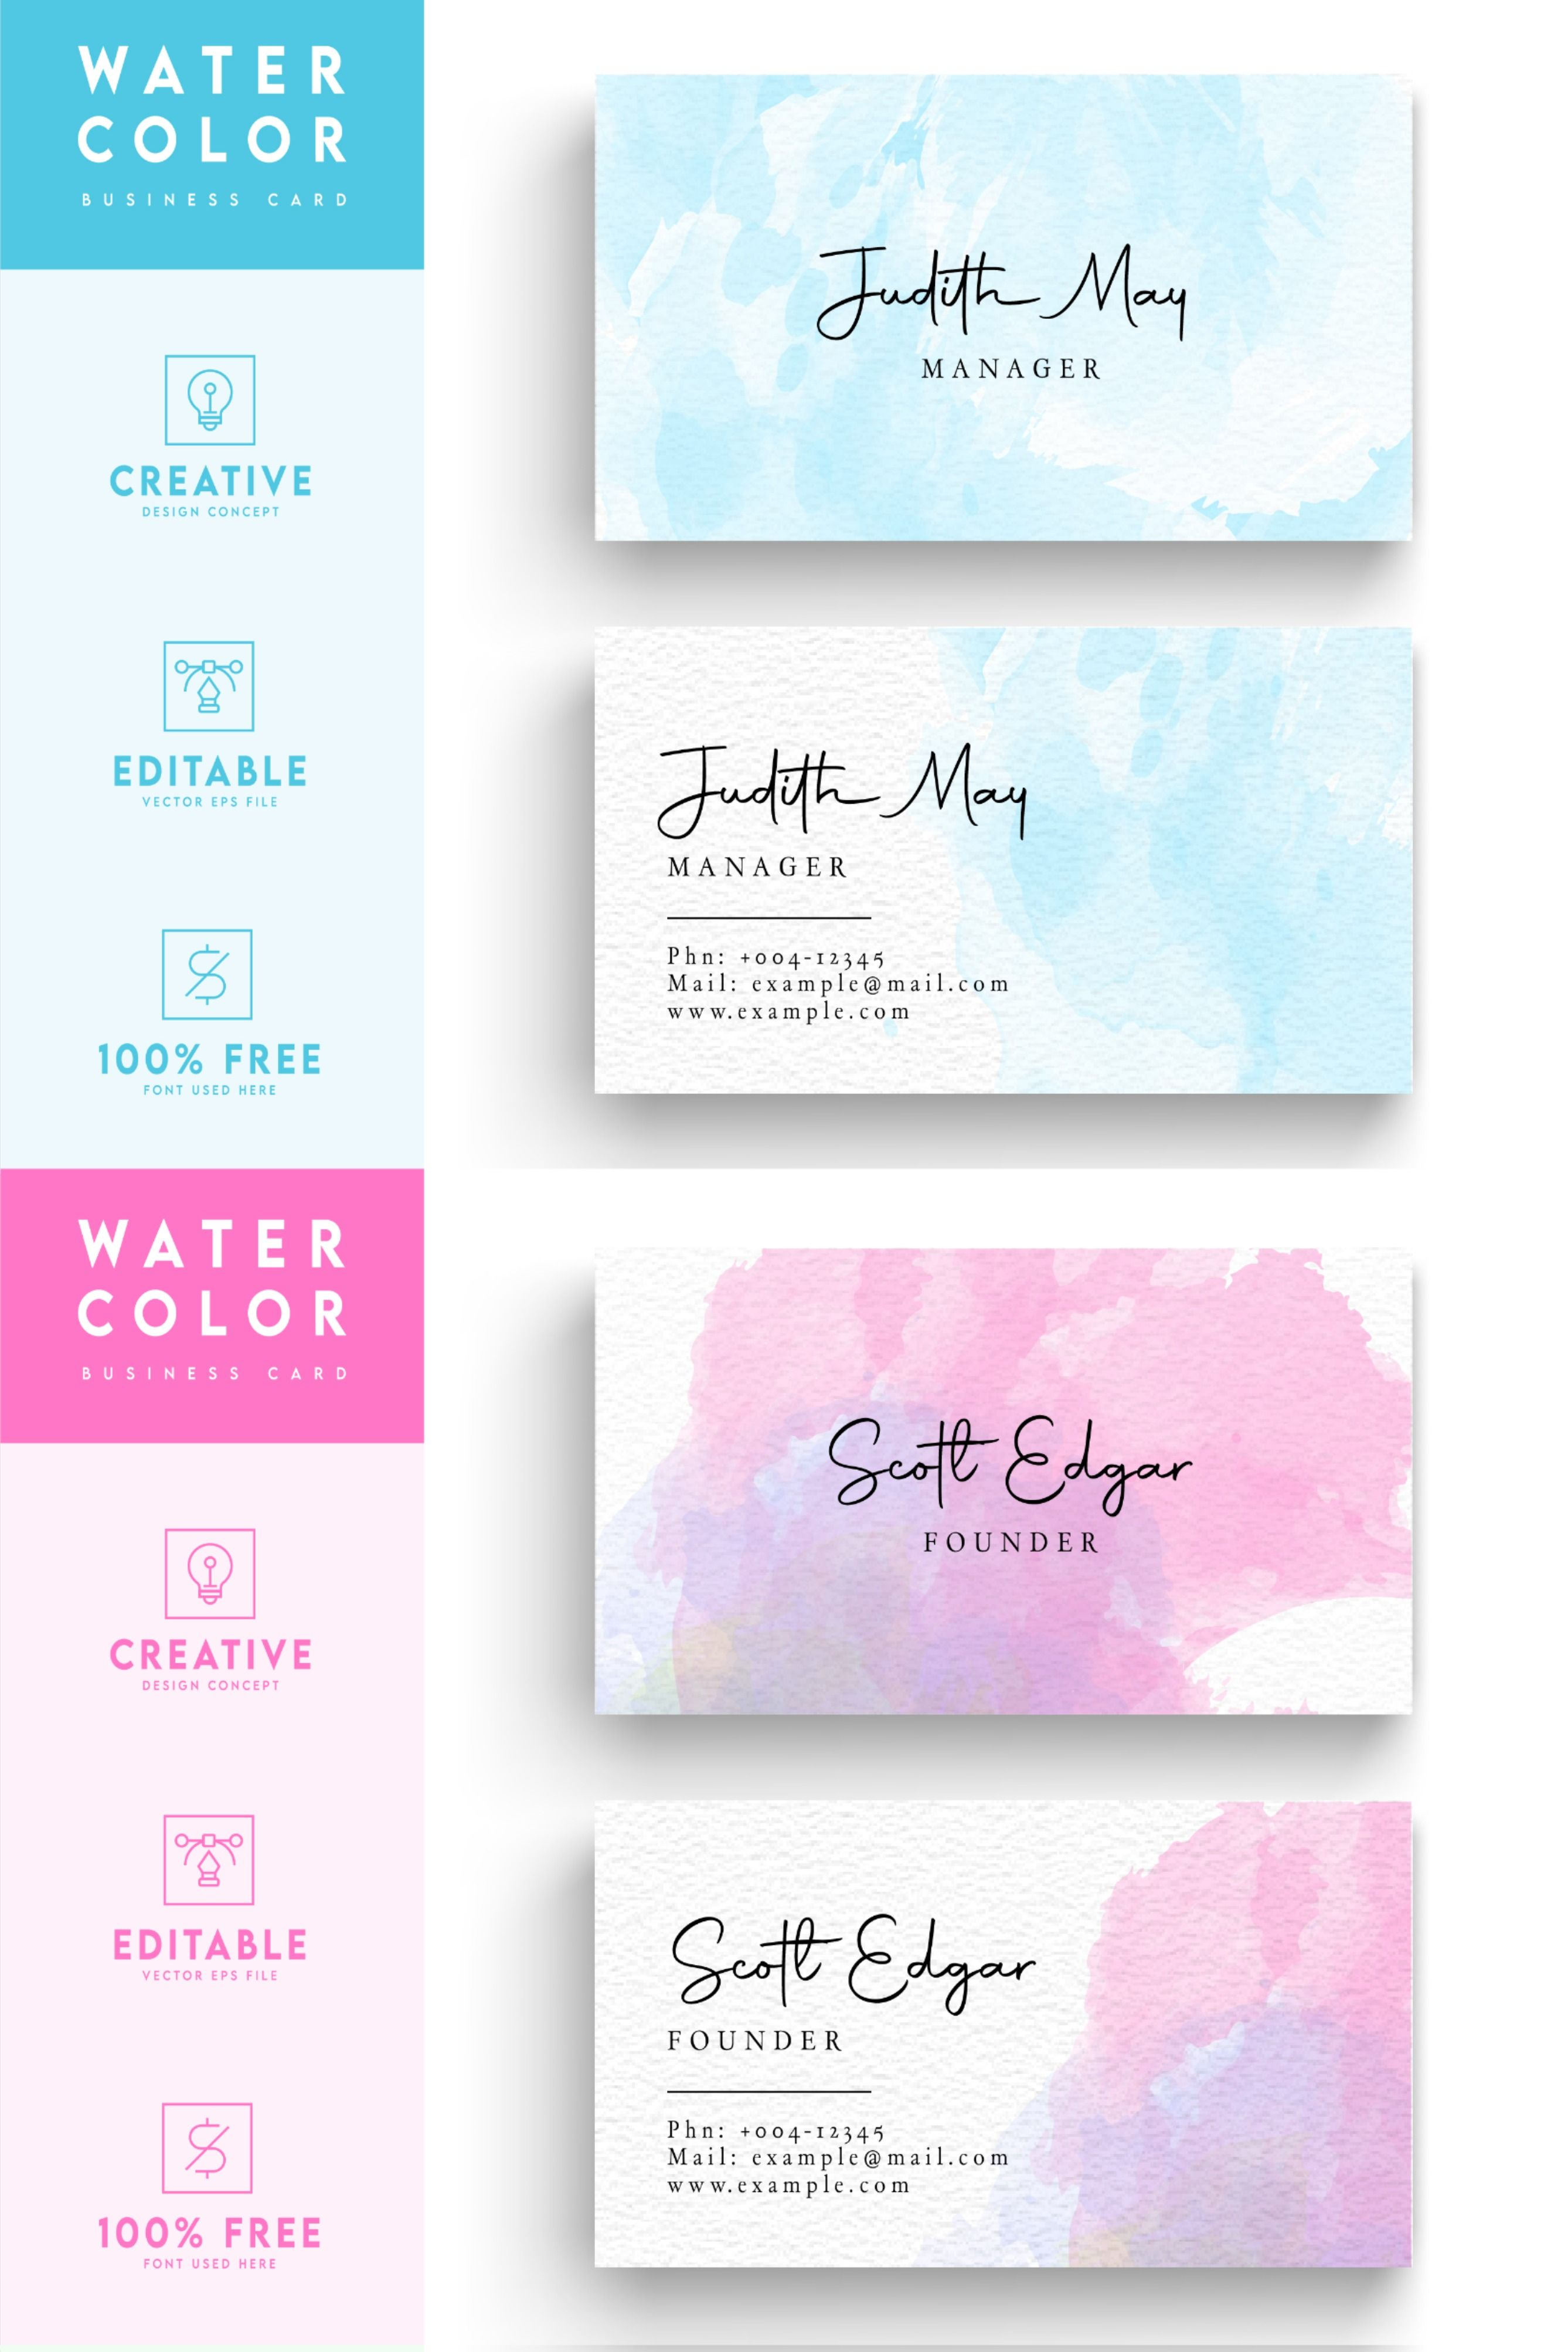 Water Color Business Card Template Pink Water Color Design In 2020 Watercolor Business Cards Artist Business Cards Business Card Design